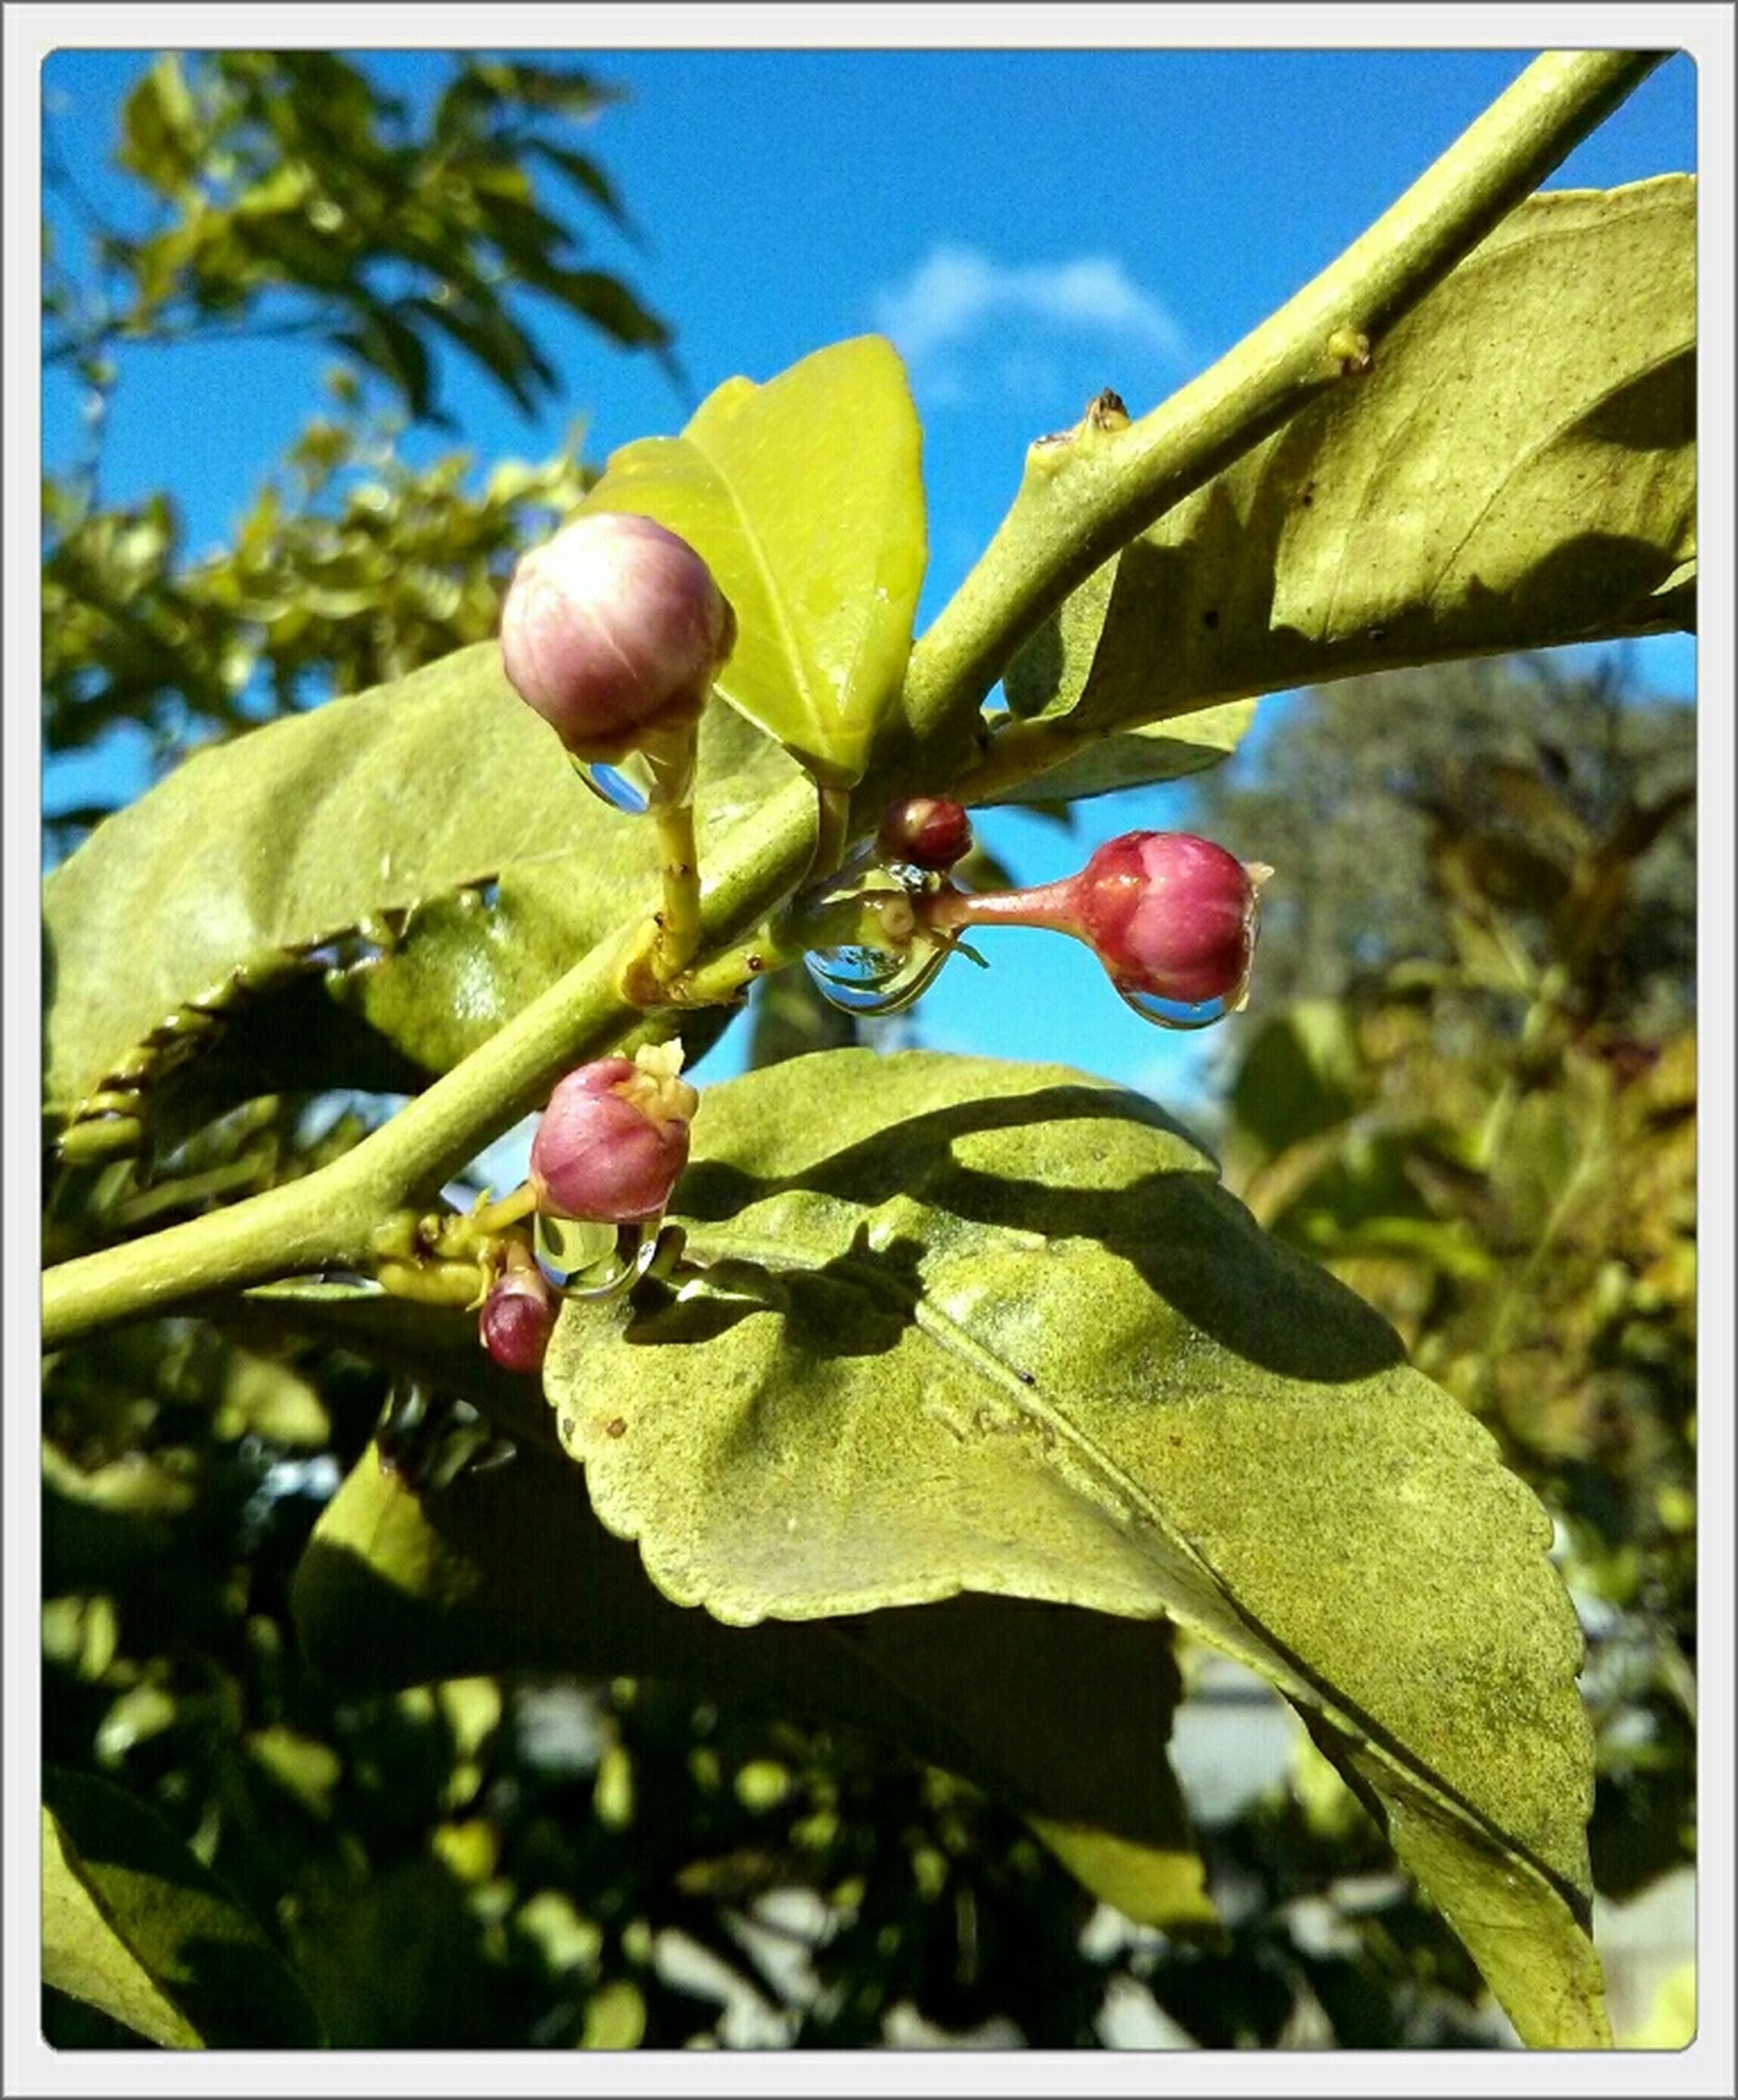 growth, freshness, leaf, flower, close-up, branch, tree, focus on foreground, fruit, nature, low angle view, transfer print, beauty in nature, bud, plant, day, sky, outdoors, fragility, food and drink